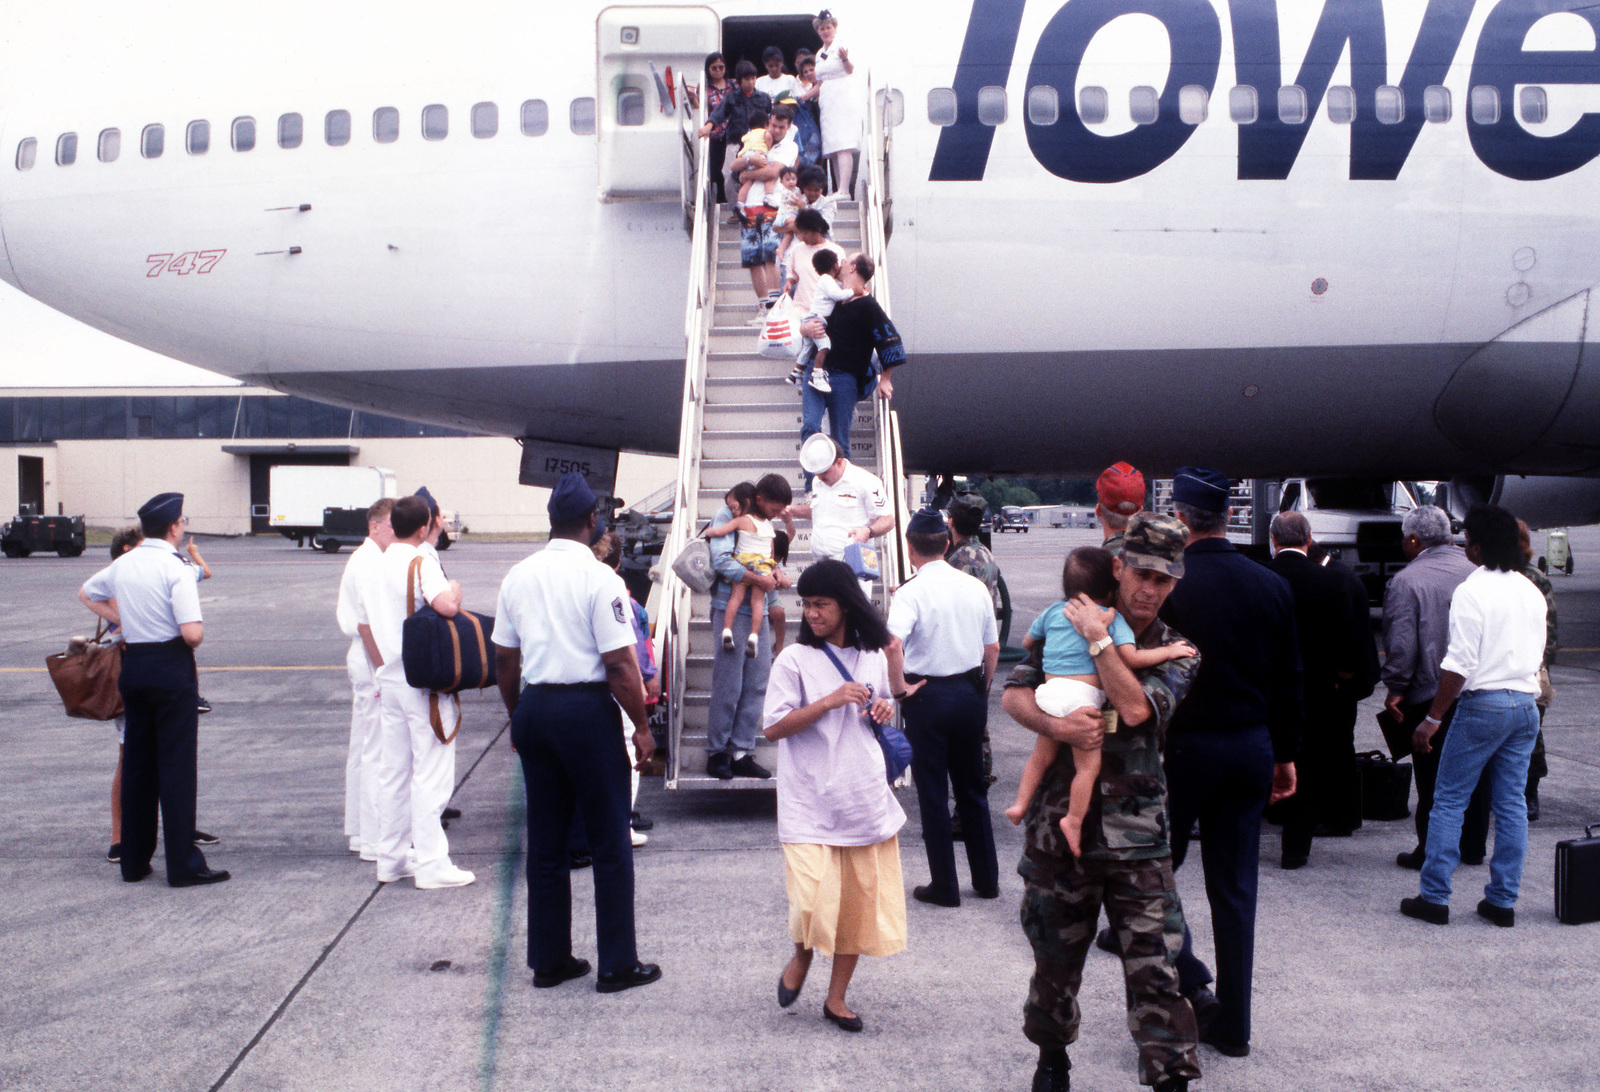 Service personnel assist dependents as they disembark from a chartered airliner upon their arrival at the base. The dependents were evacuated from Clark Air Base and Naval Station, Subic Bay, in the Philippines following the eruption of Mount Pinatubo